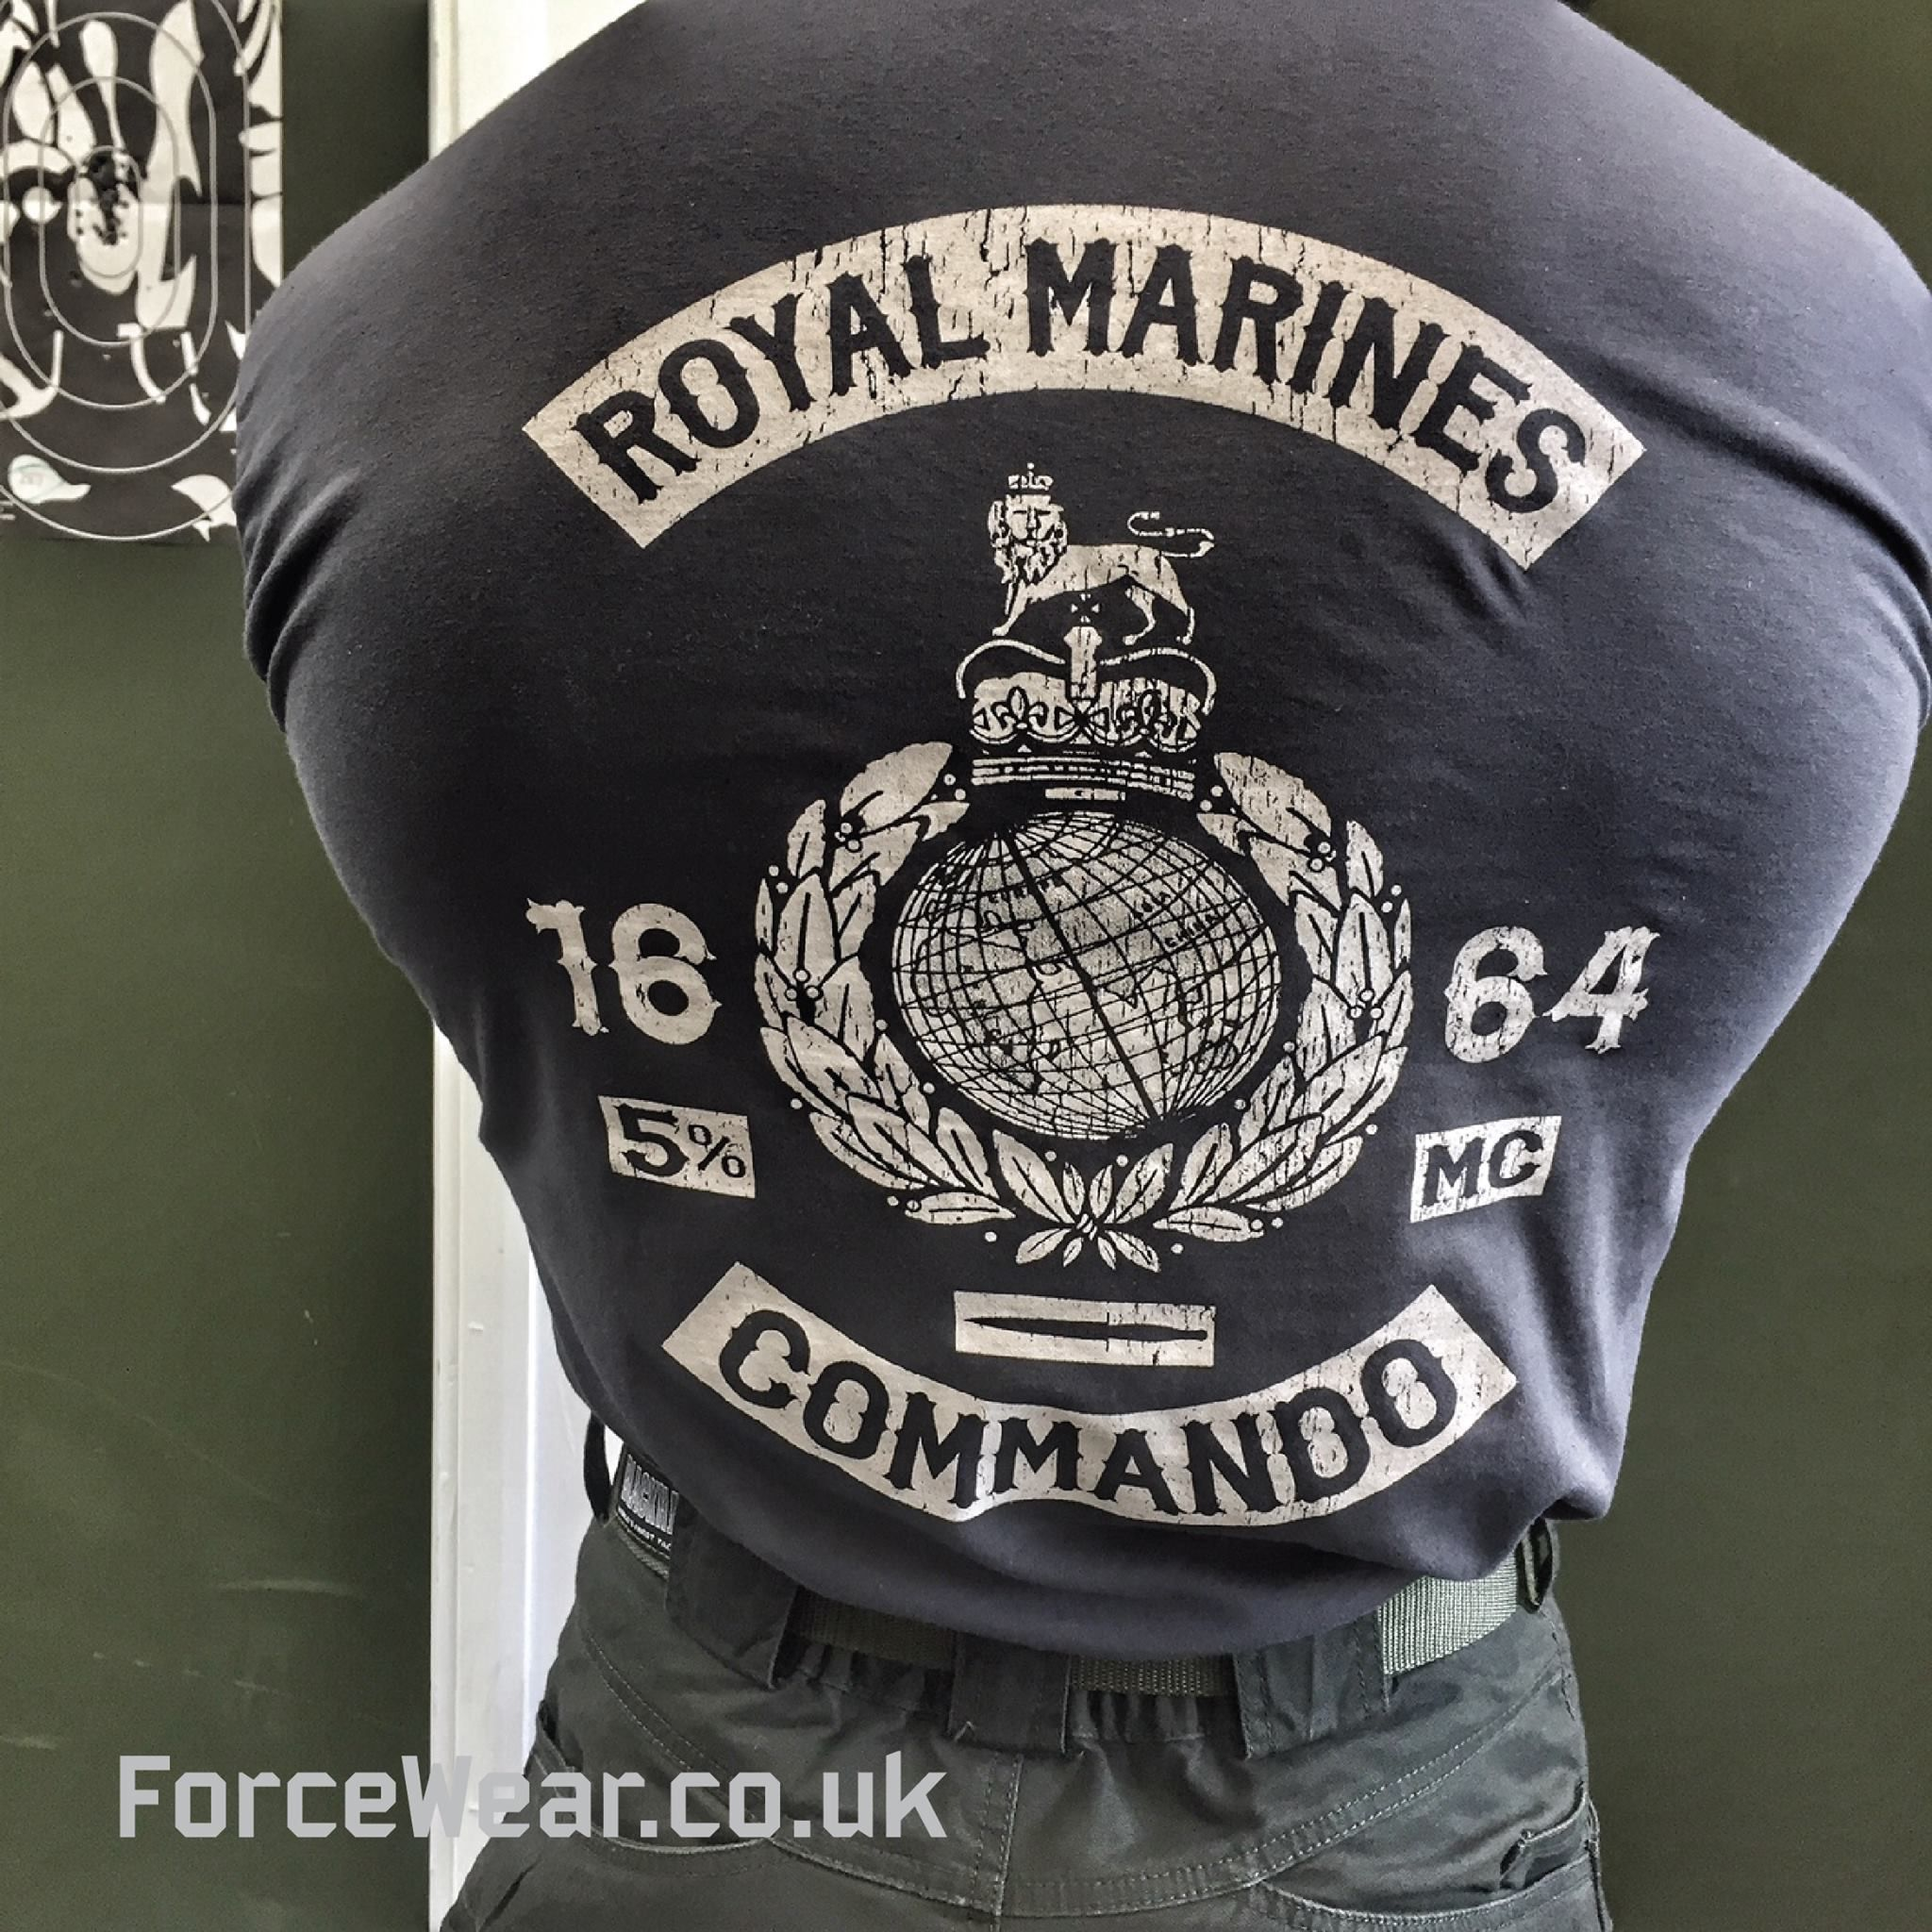 Pin By William Mcduffy On Club Colors Royal Marines Club Color Motorcycle Clubs